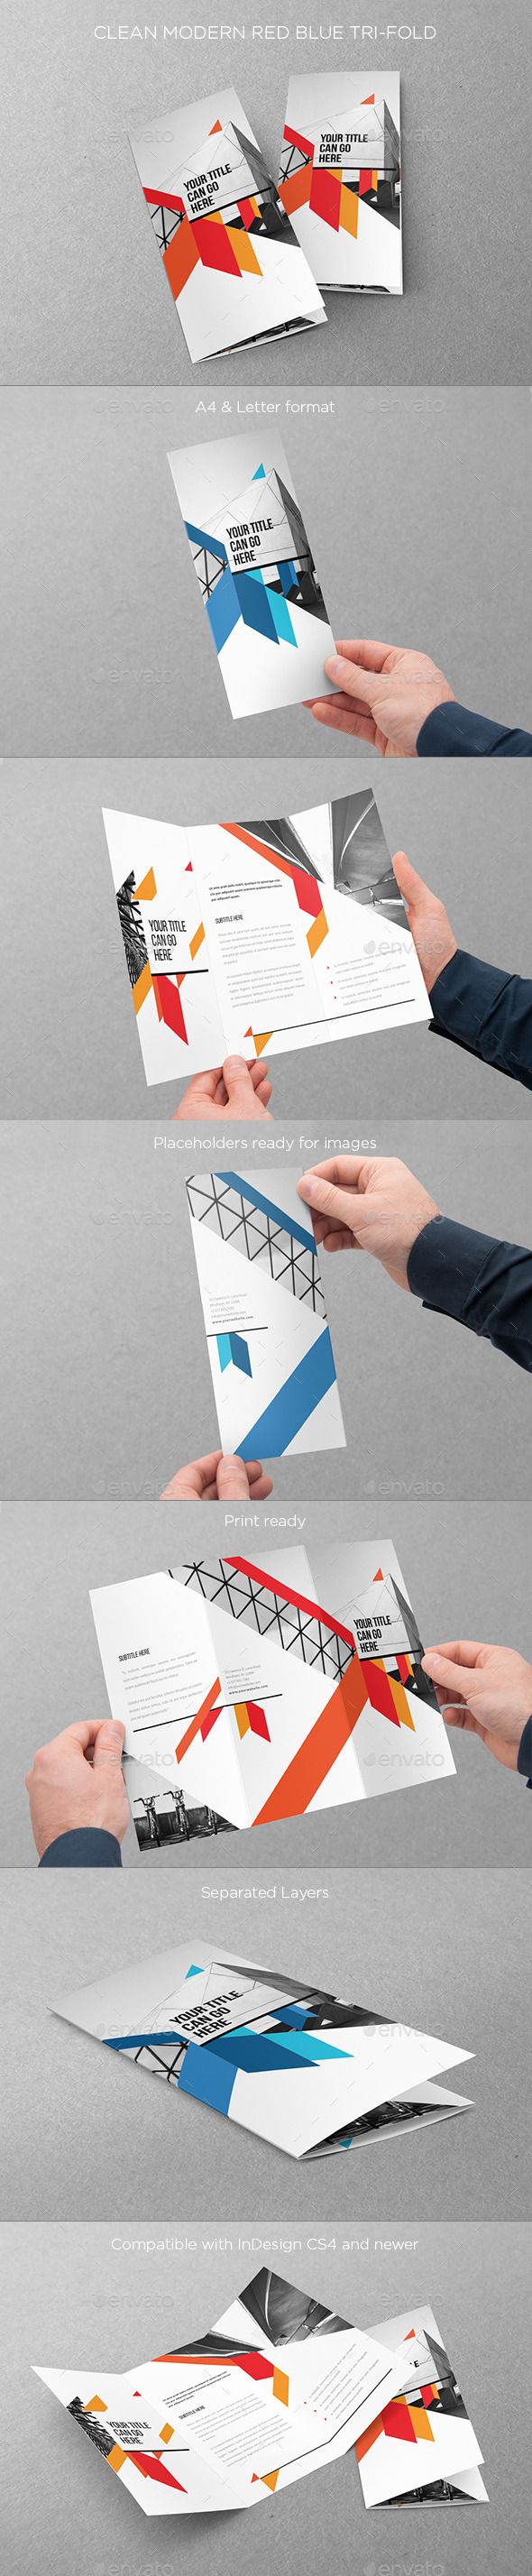 Clean Modern Red Blue Trifold - Brochures Print Templates